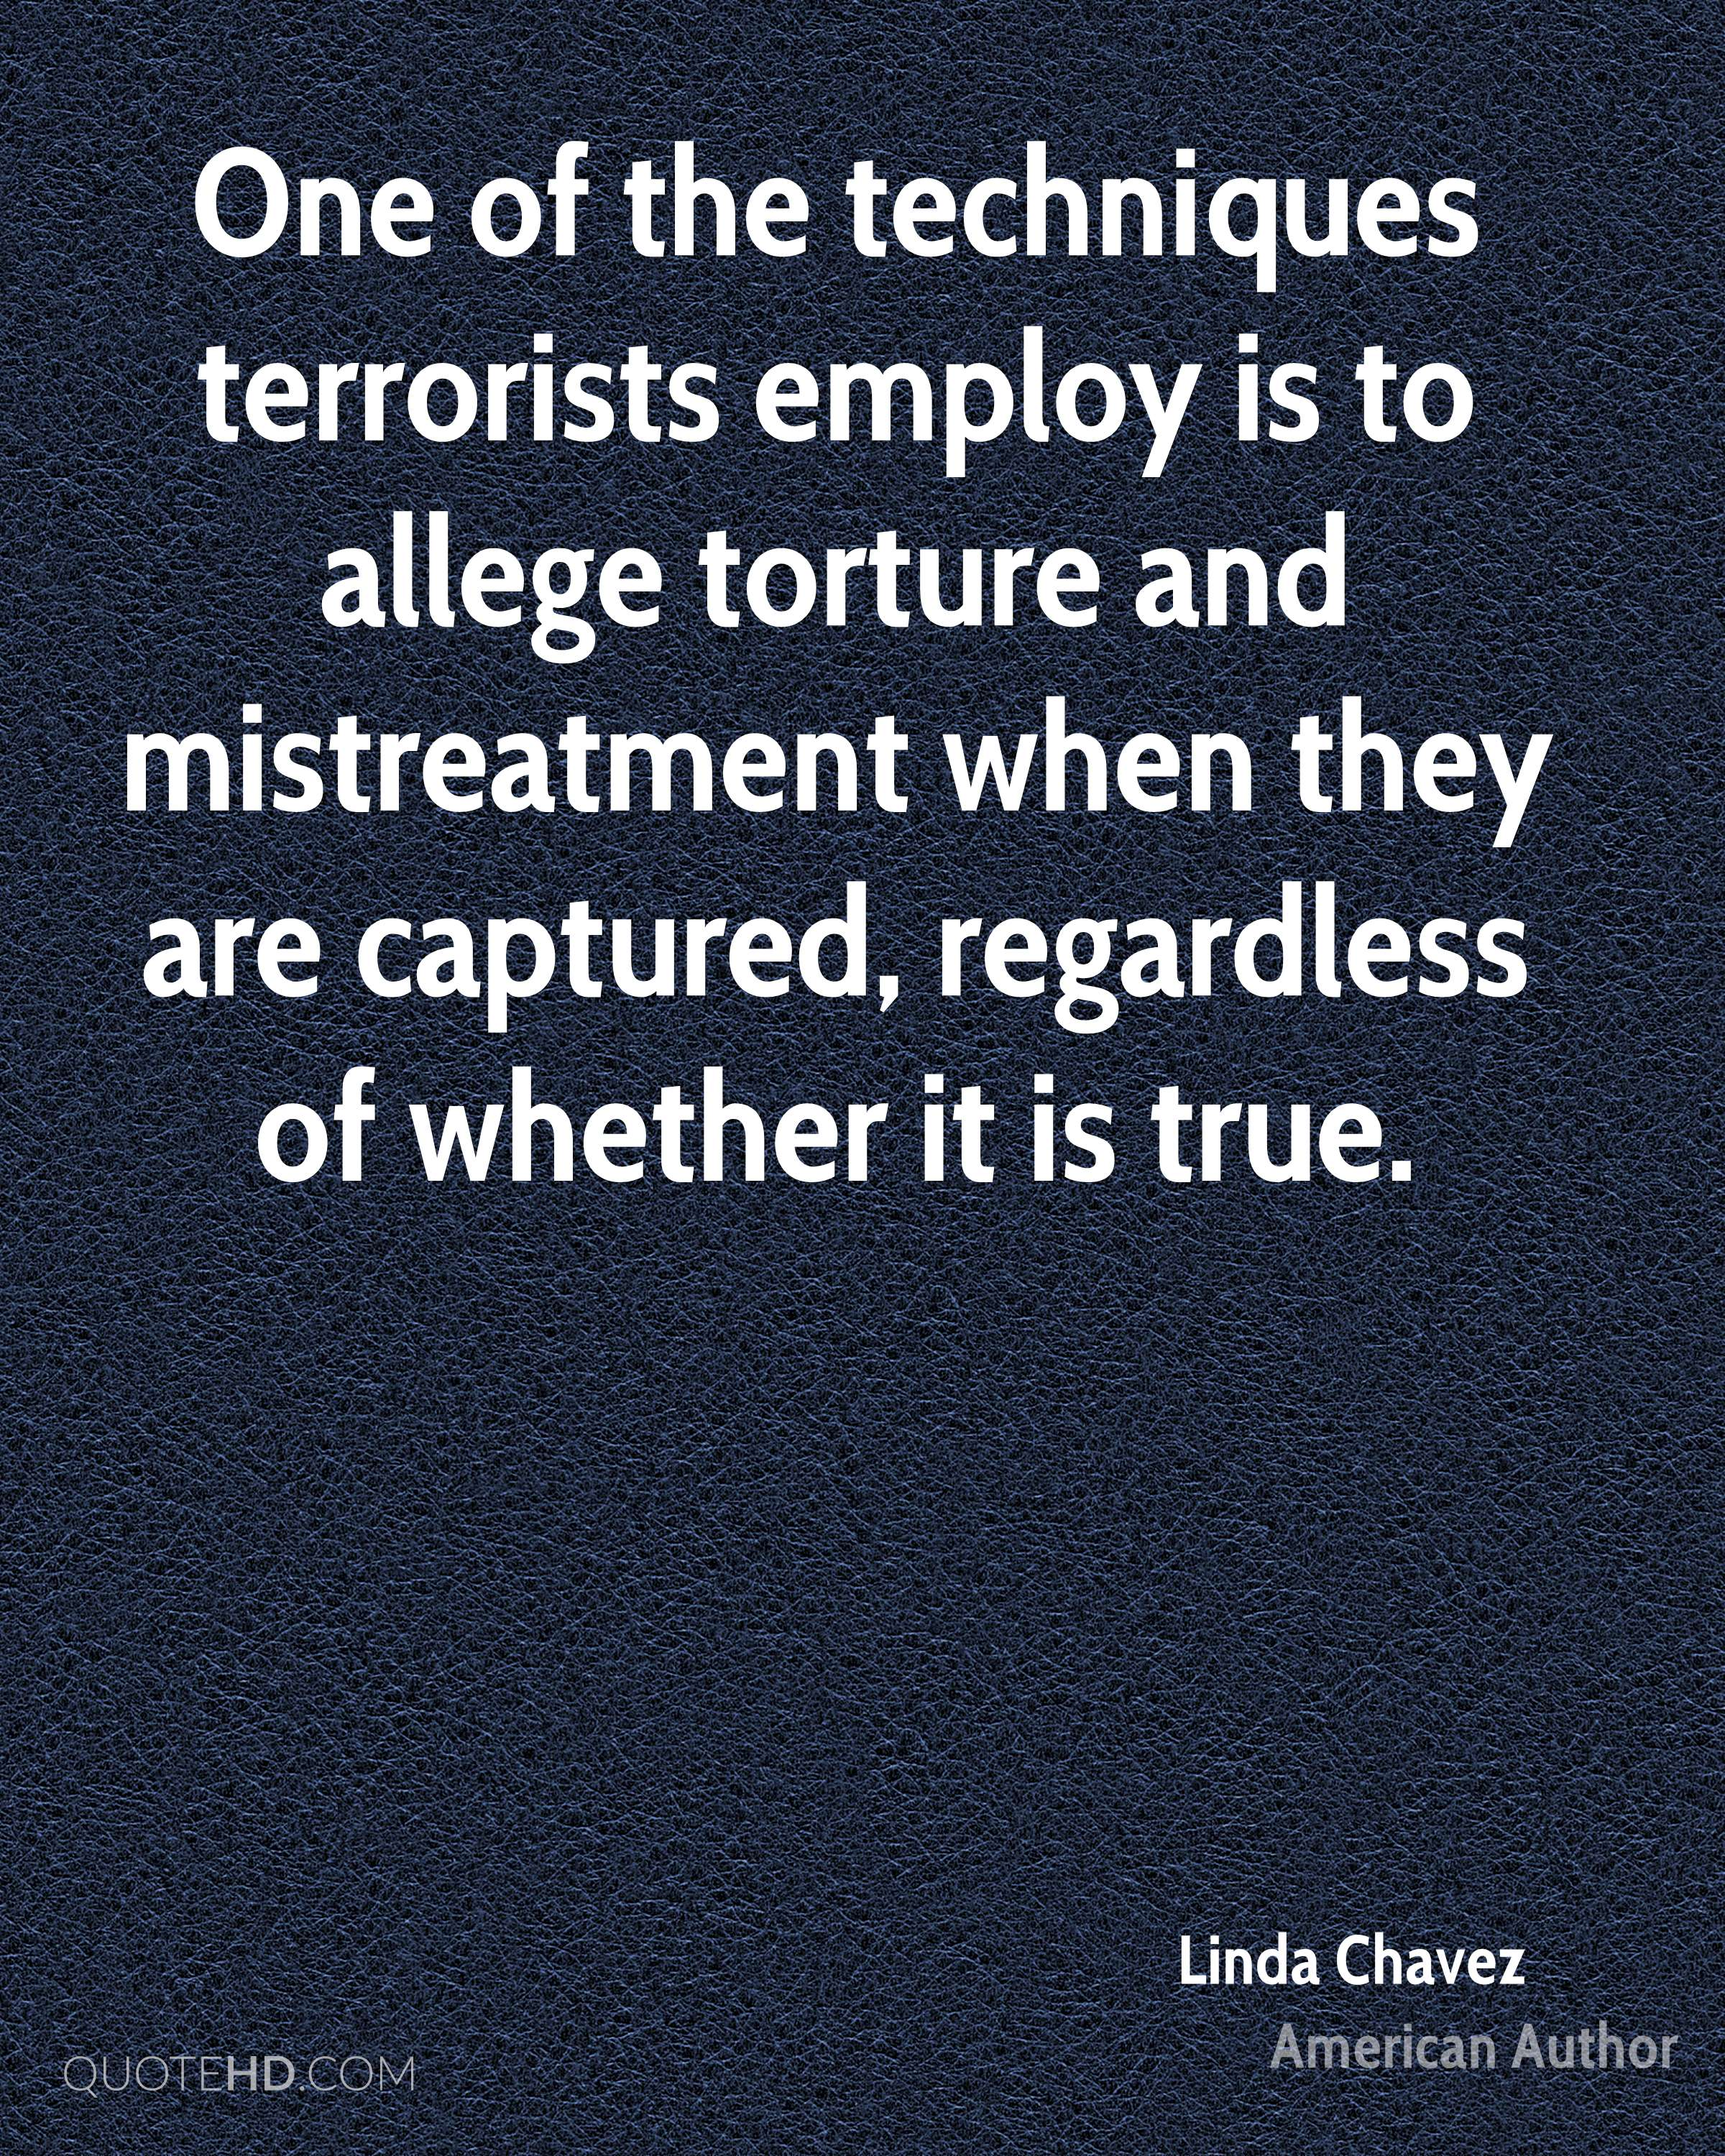 One of the techniques terrorists employ is to allege torture and mistreatment when they are captured, regardless of whether it is true.